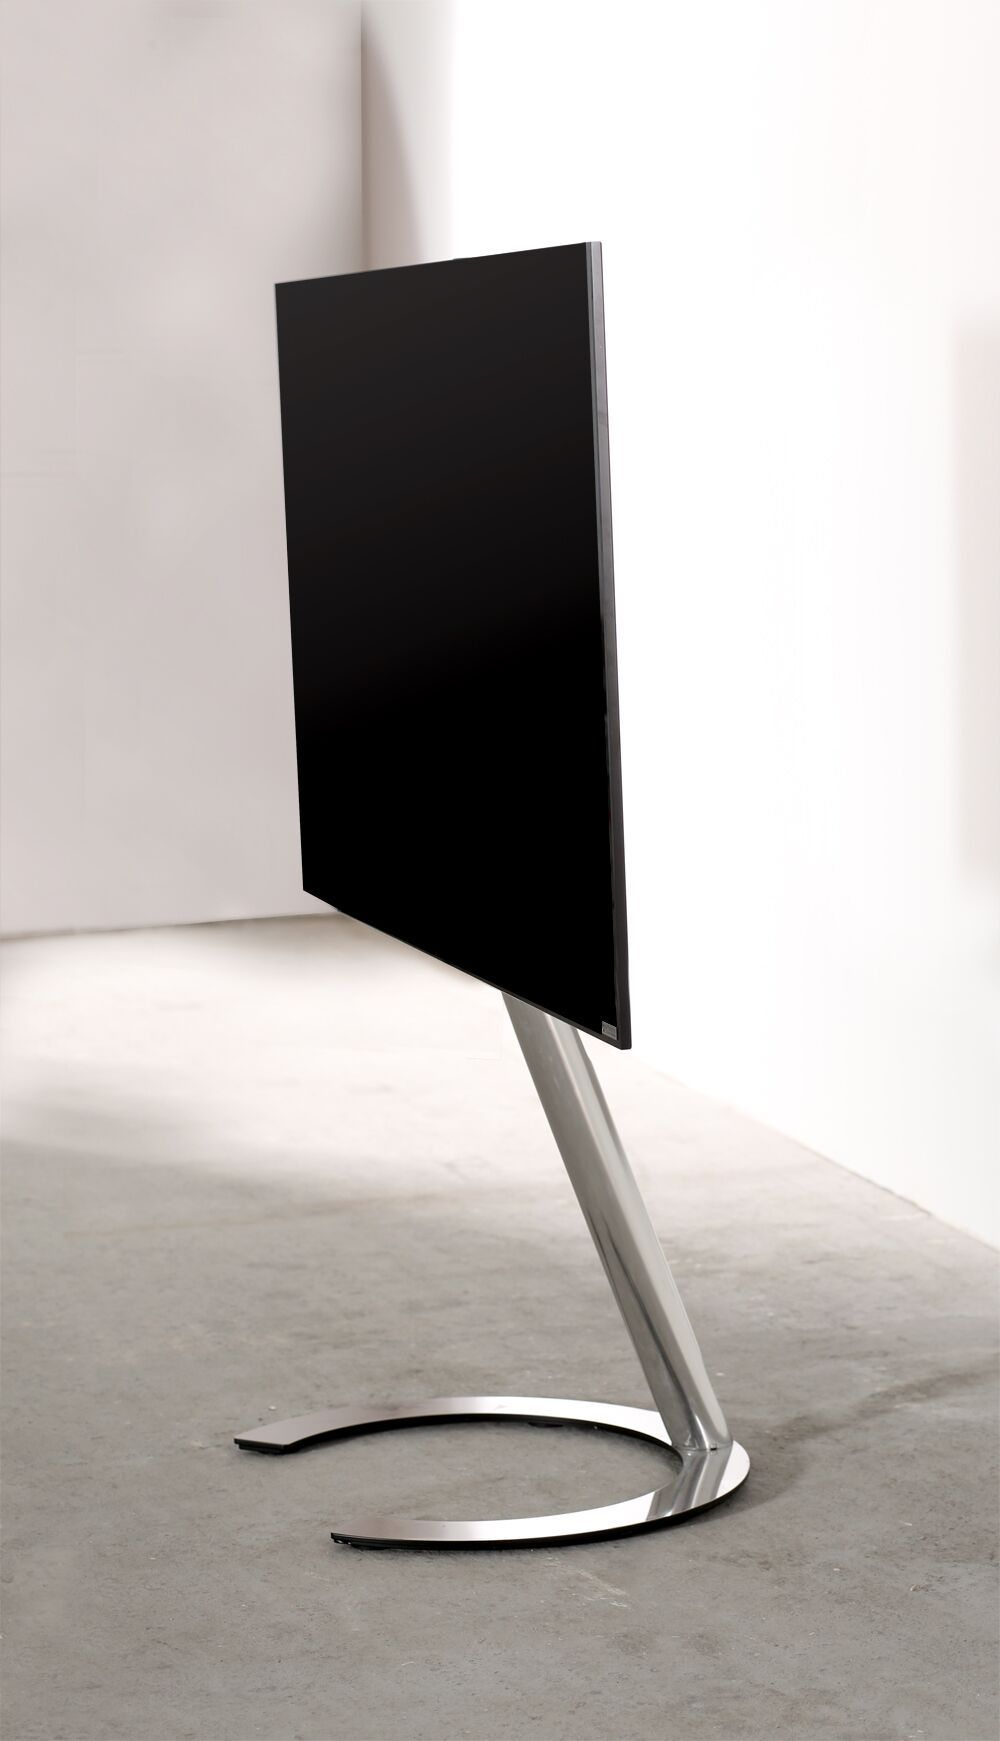 Design Tv Ständer Ecoline Design At Low Price Level More Is Less Minimalist Tv